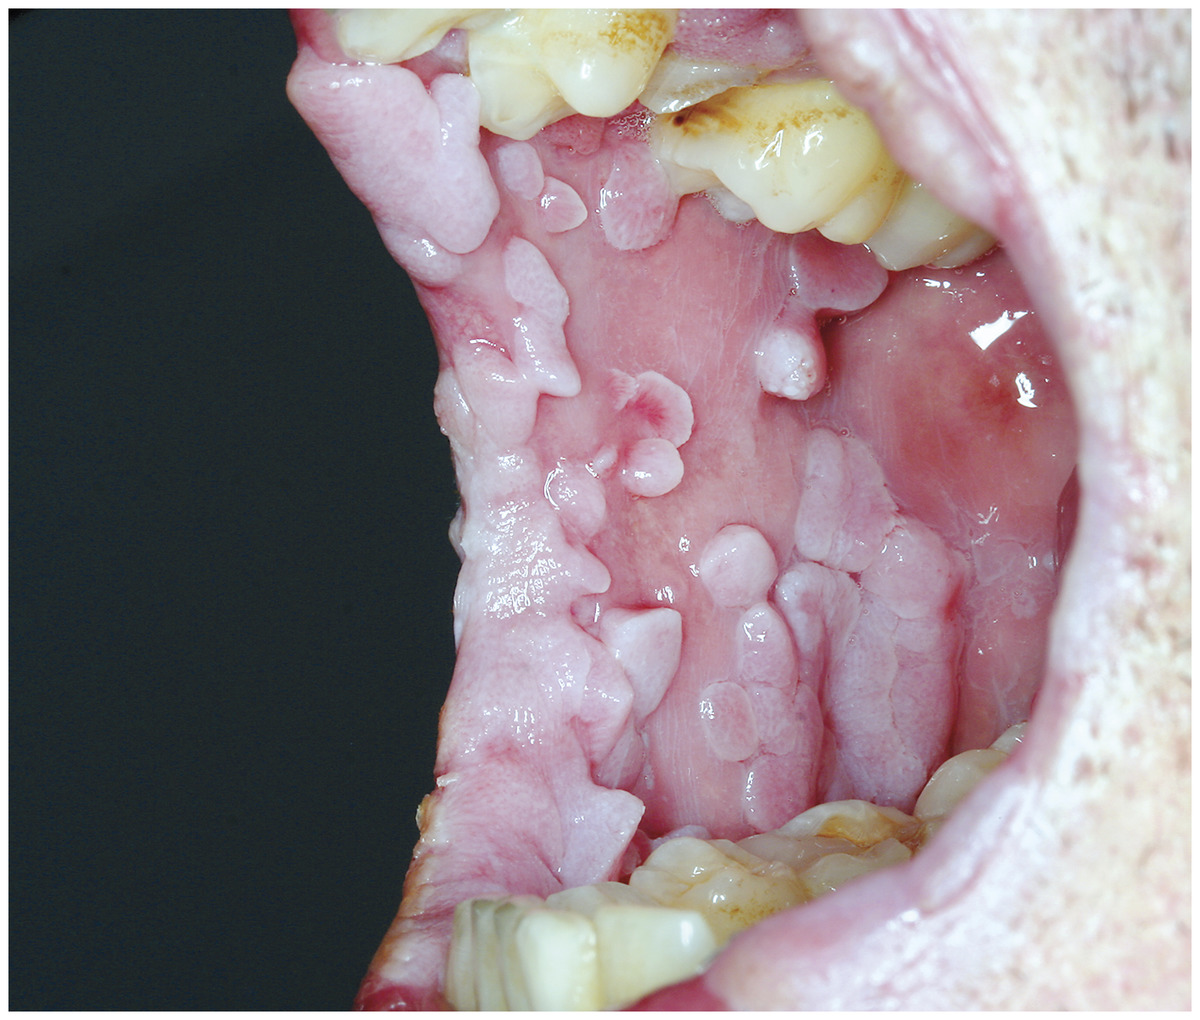 hpv mouth infection)